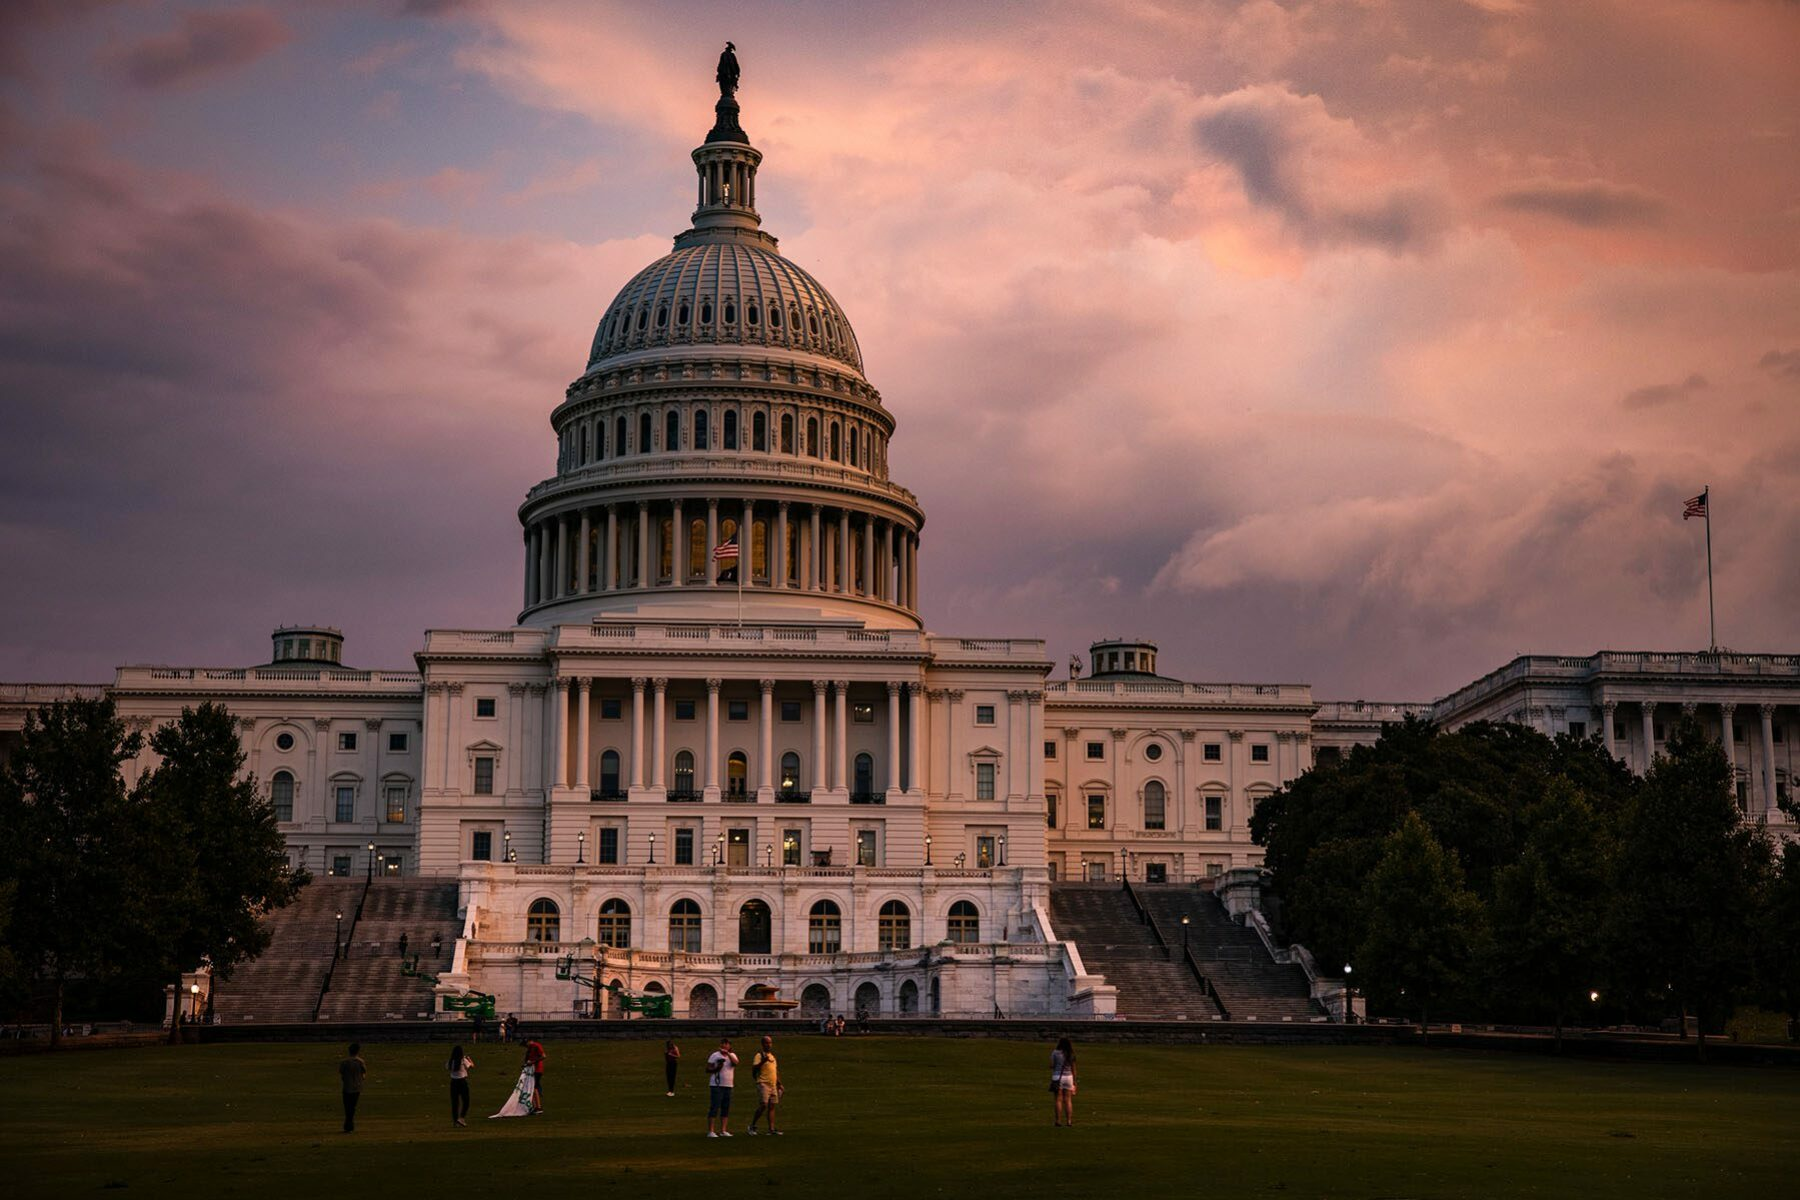 The U.S. Capitol Building is seen as the sun sets and large clouds from a thunderstorm run through the area.